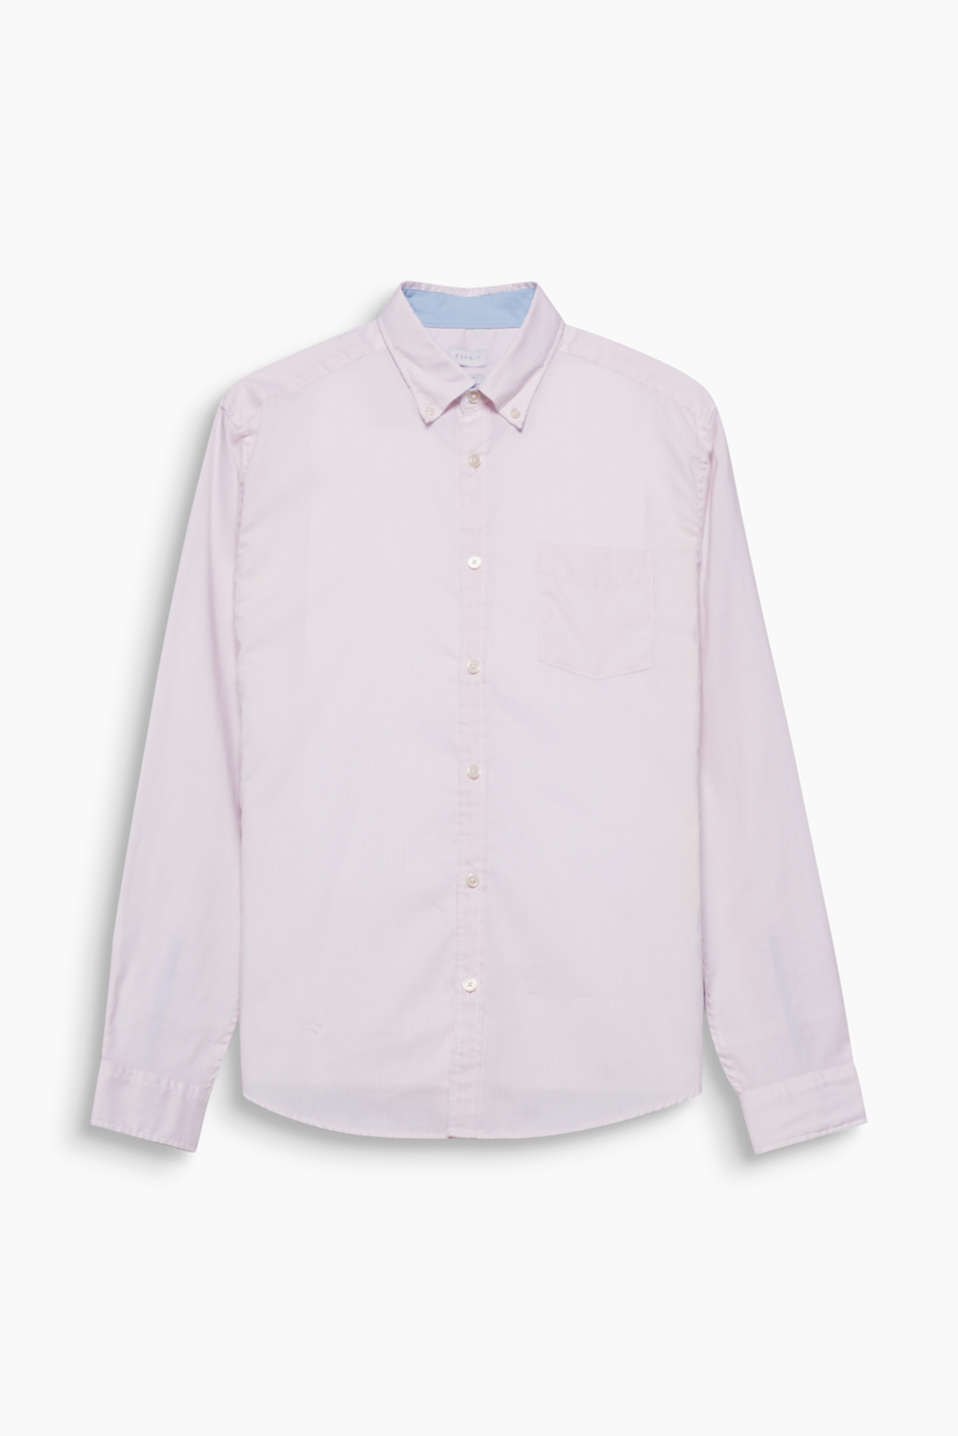 Classic design, casual look! The fine vertical stripes and button-down collar are delicate details on this shirt.